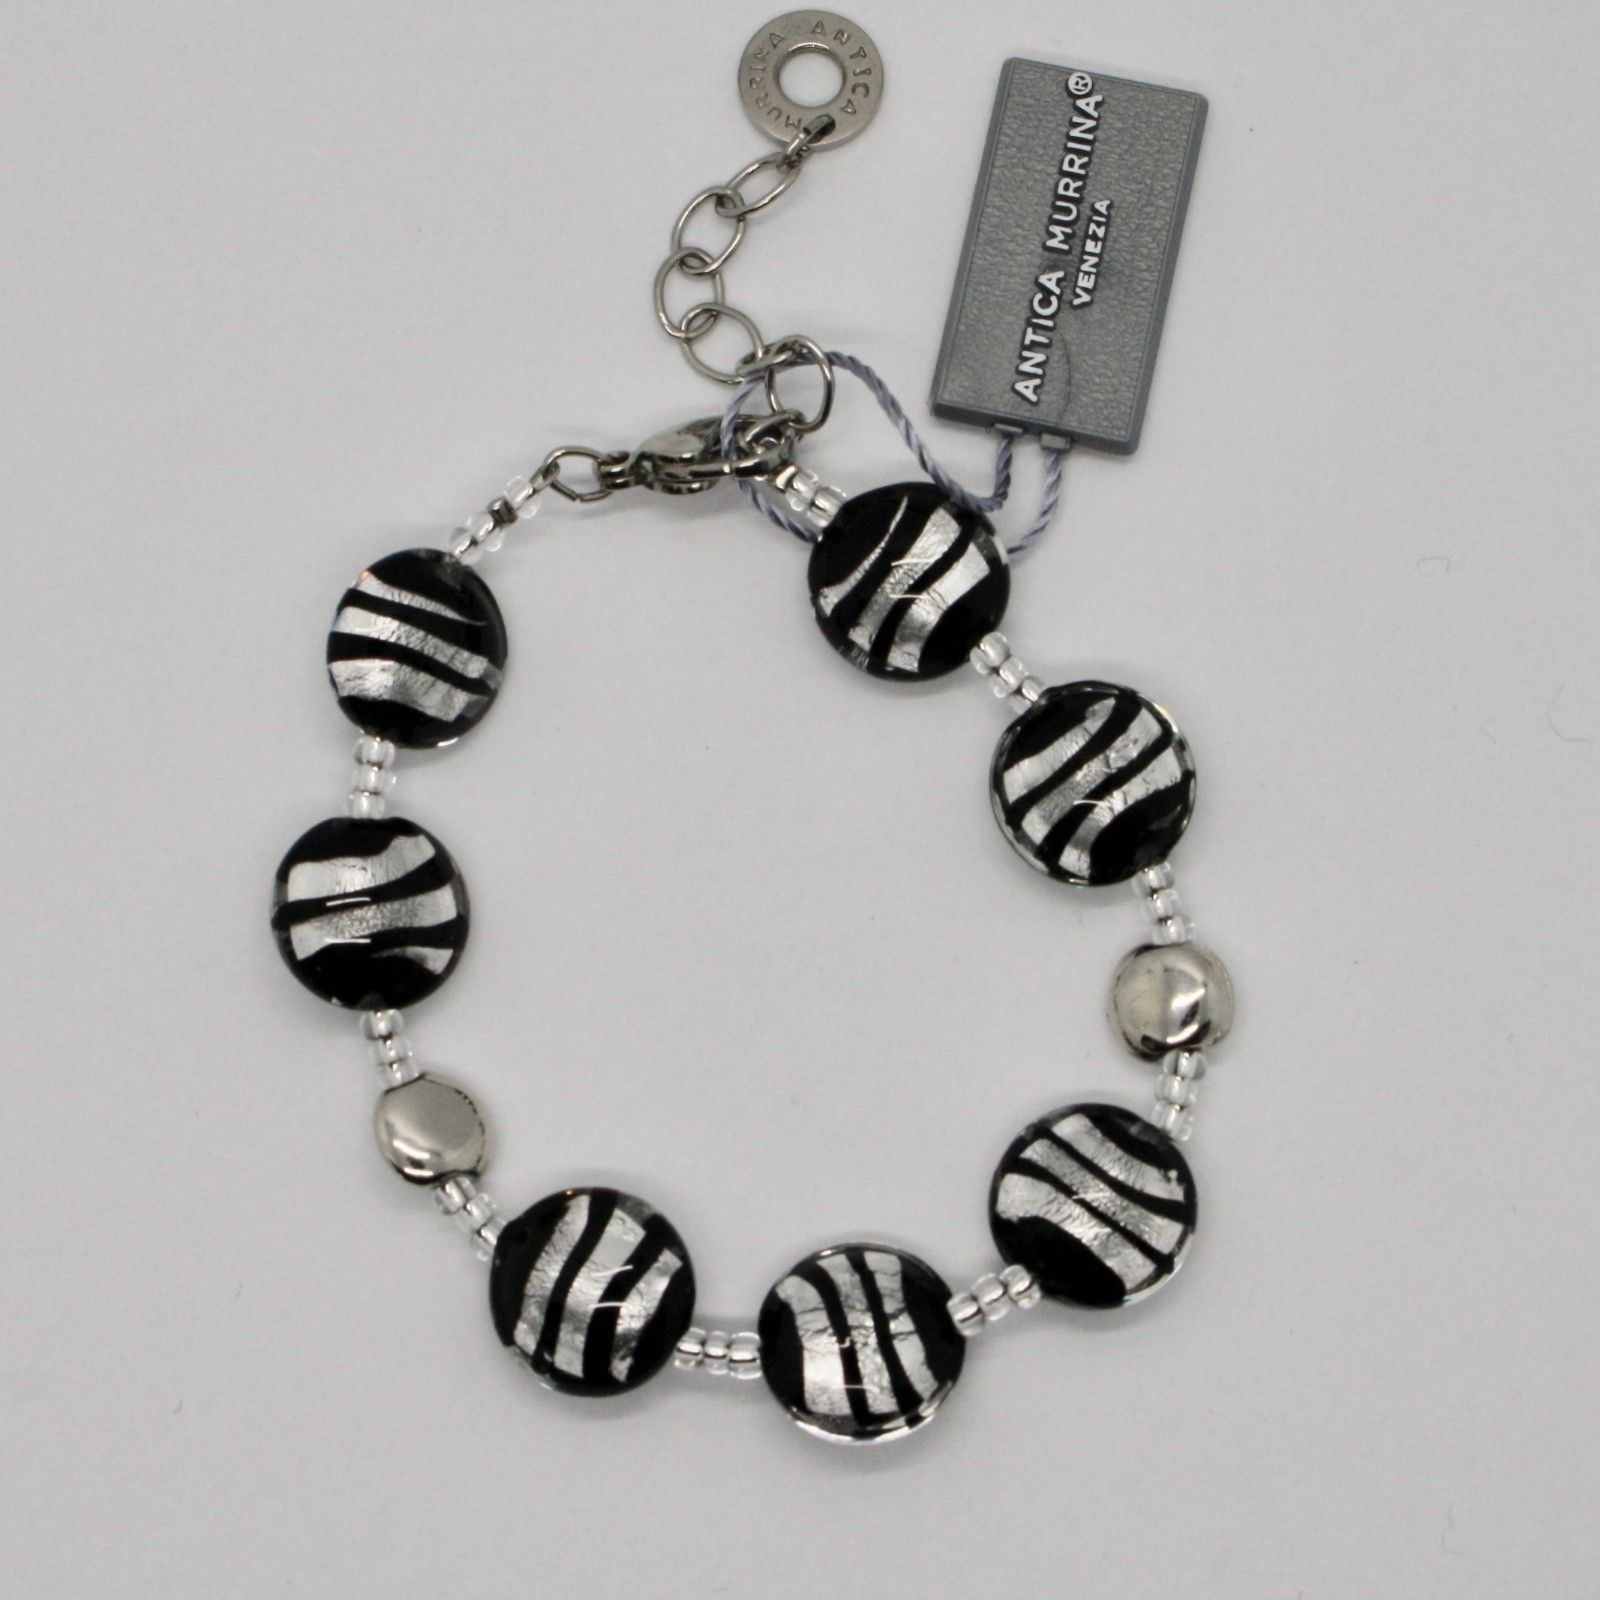 BRACELET ANTICA MURRINA VENEZIA WITH MURANO GLASS BLACK SILVER RIGHE BR297A15